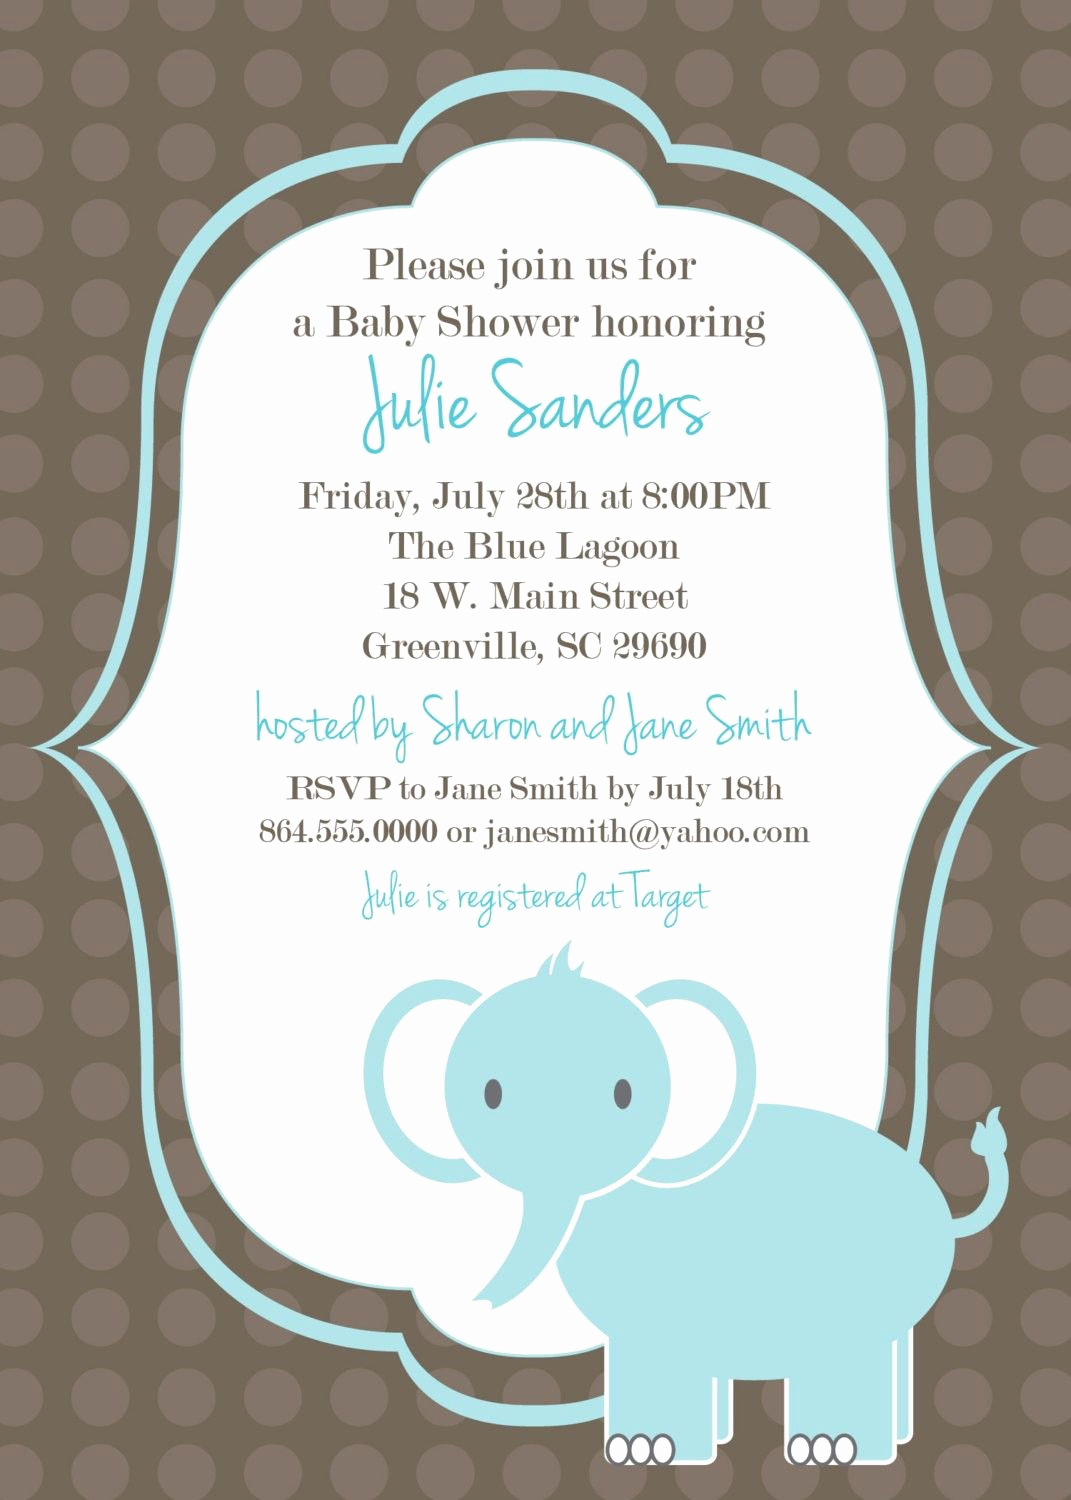 Girl Baby Shower Invitation Templates Awesome Download Free Template Got the Free Baby Shower